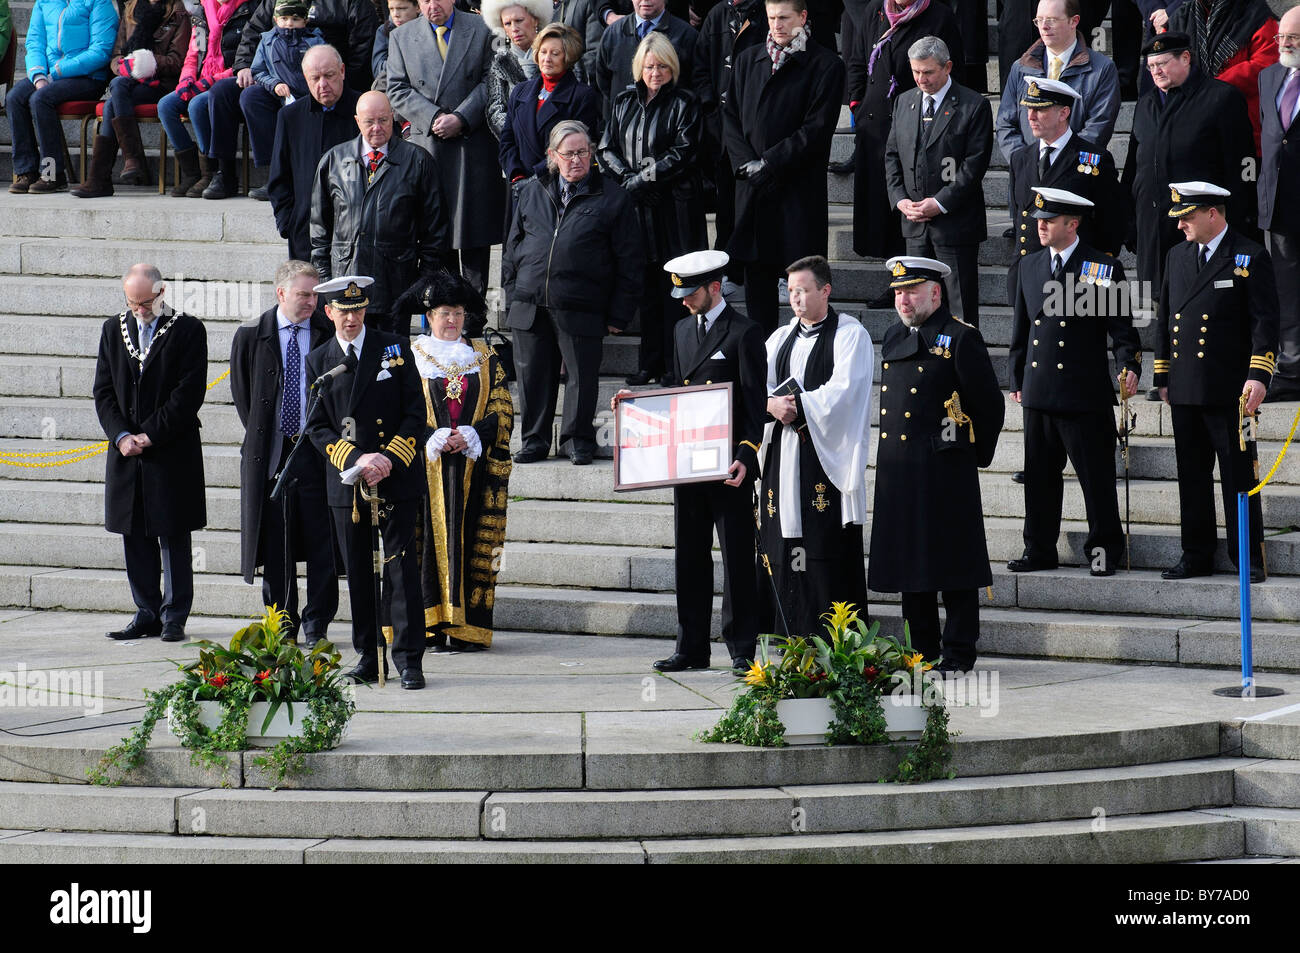 Lord Mayor of Portsmouth Cllr Paula Riches receiving a ship's white ensign during the decommissioning parade - Stock Image